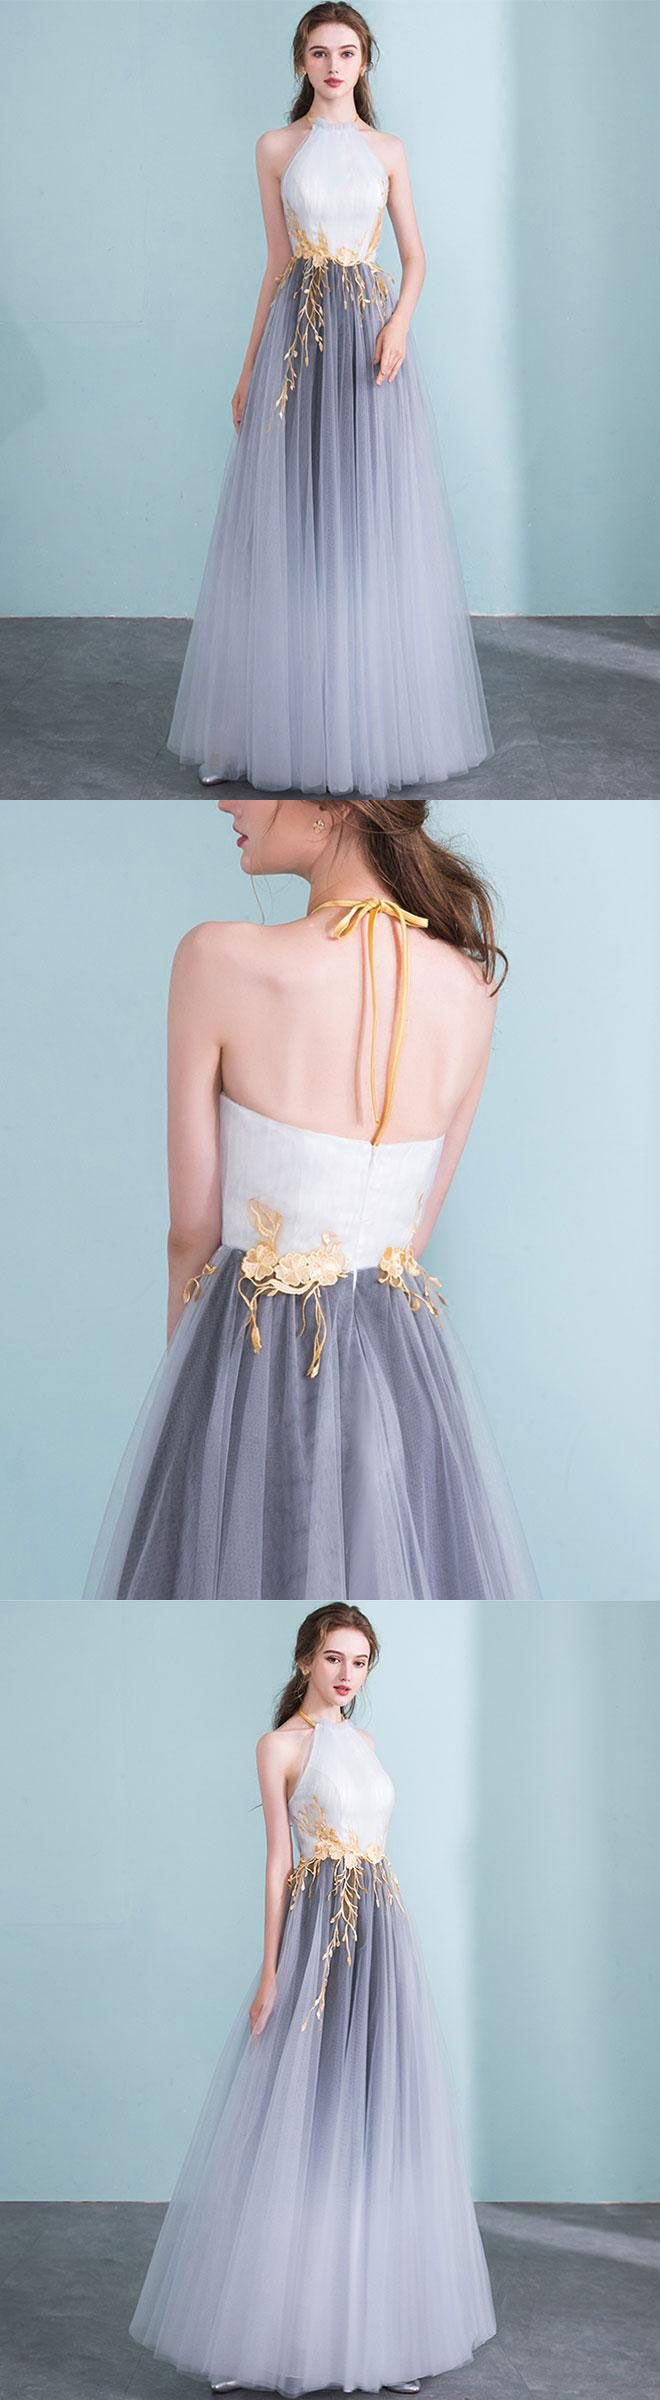 Gray gradient tulle long prom dress gray evening dress in